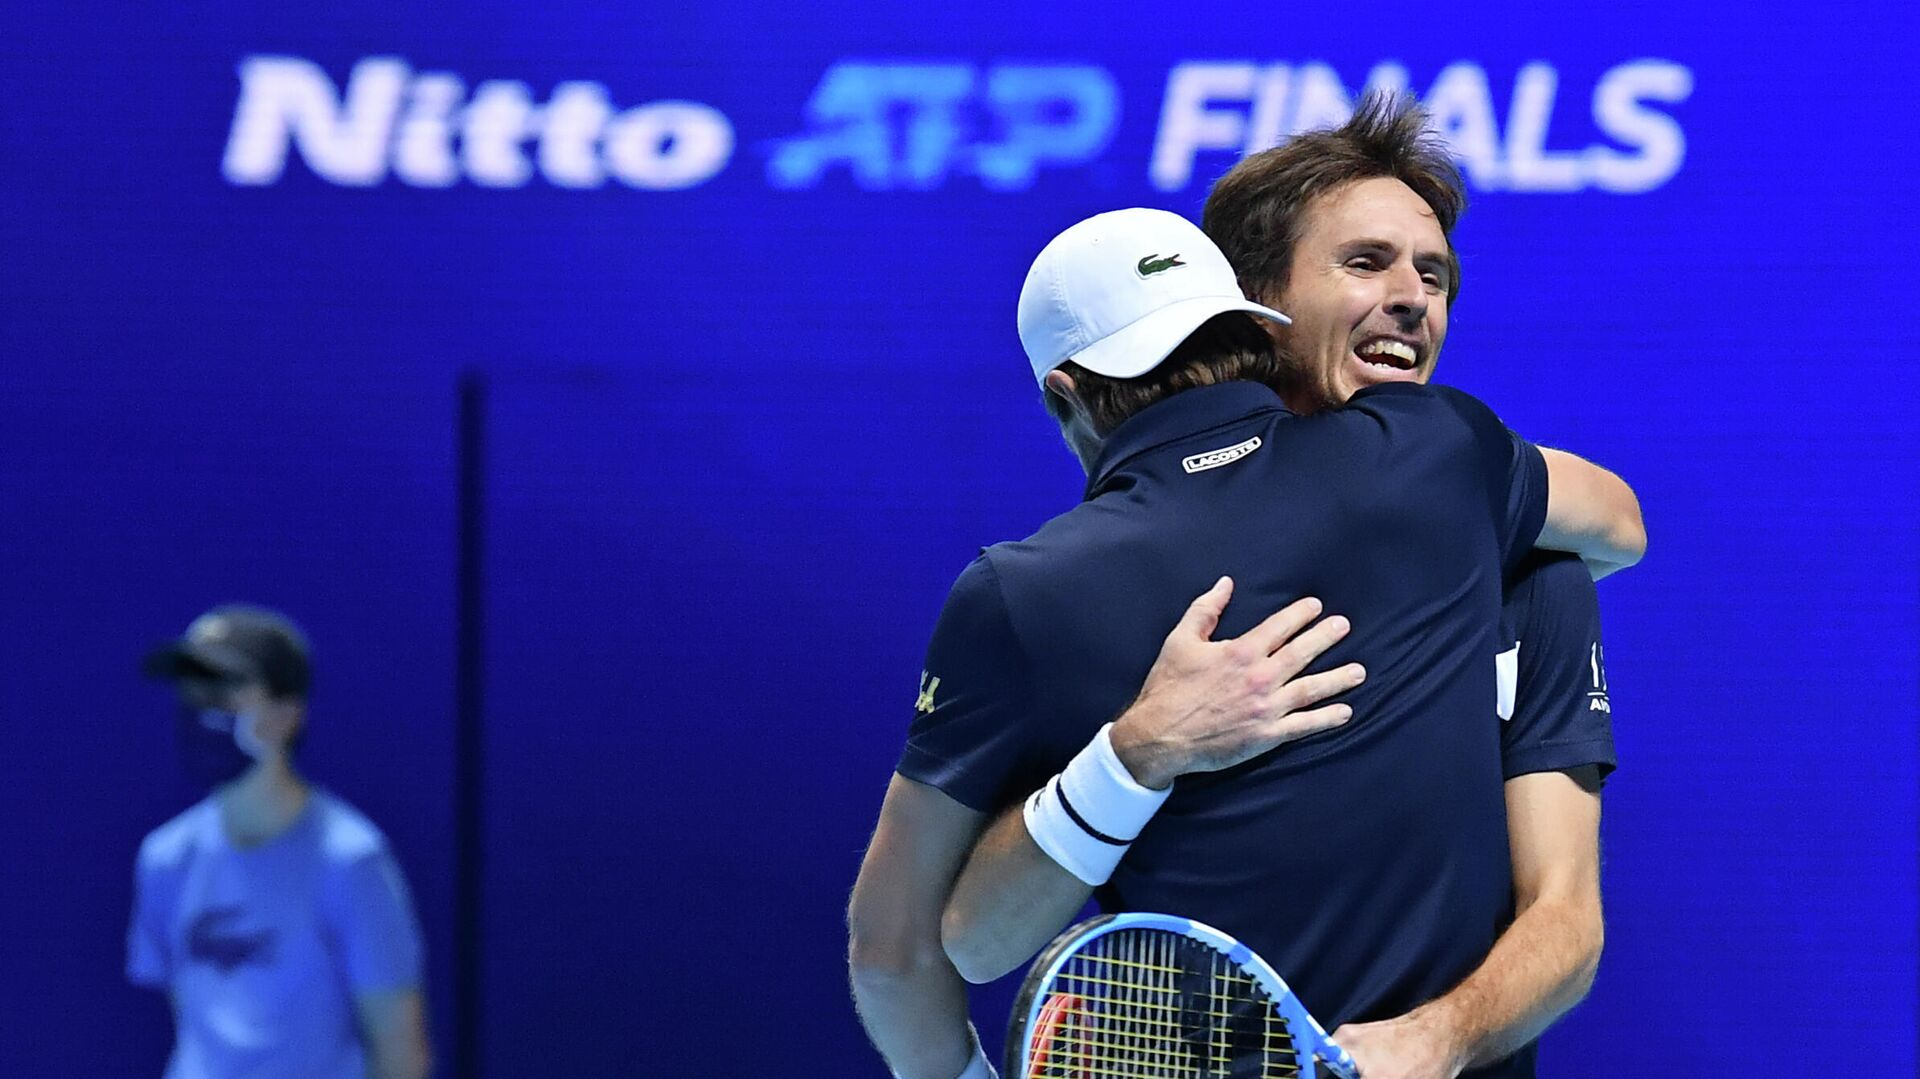 France's Edouard Roger-Vasselin (R) and Austria's Jurgen Melzer (front) embrace after winnning the match against Australia's John Peers and New Zealand's Michael Venus in their men's doubles round-robin match on day four of the ATP World Tour Finals tennis tournament at the O2 Arena in London on November 18, 2020. (Photo by Glyn KIRK / AFP) - РИА Новости, 1920, 18.11.2020